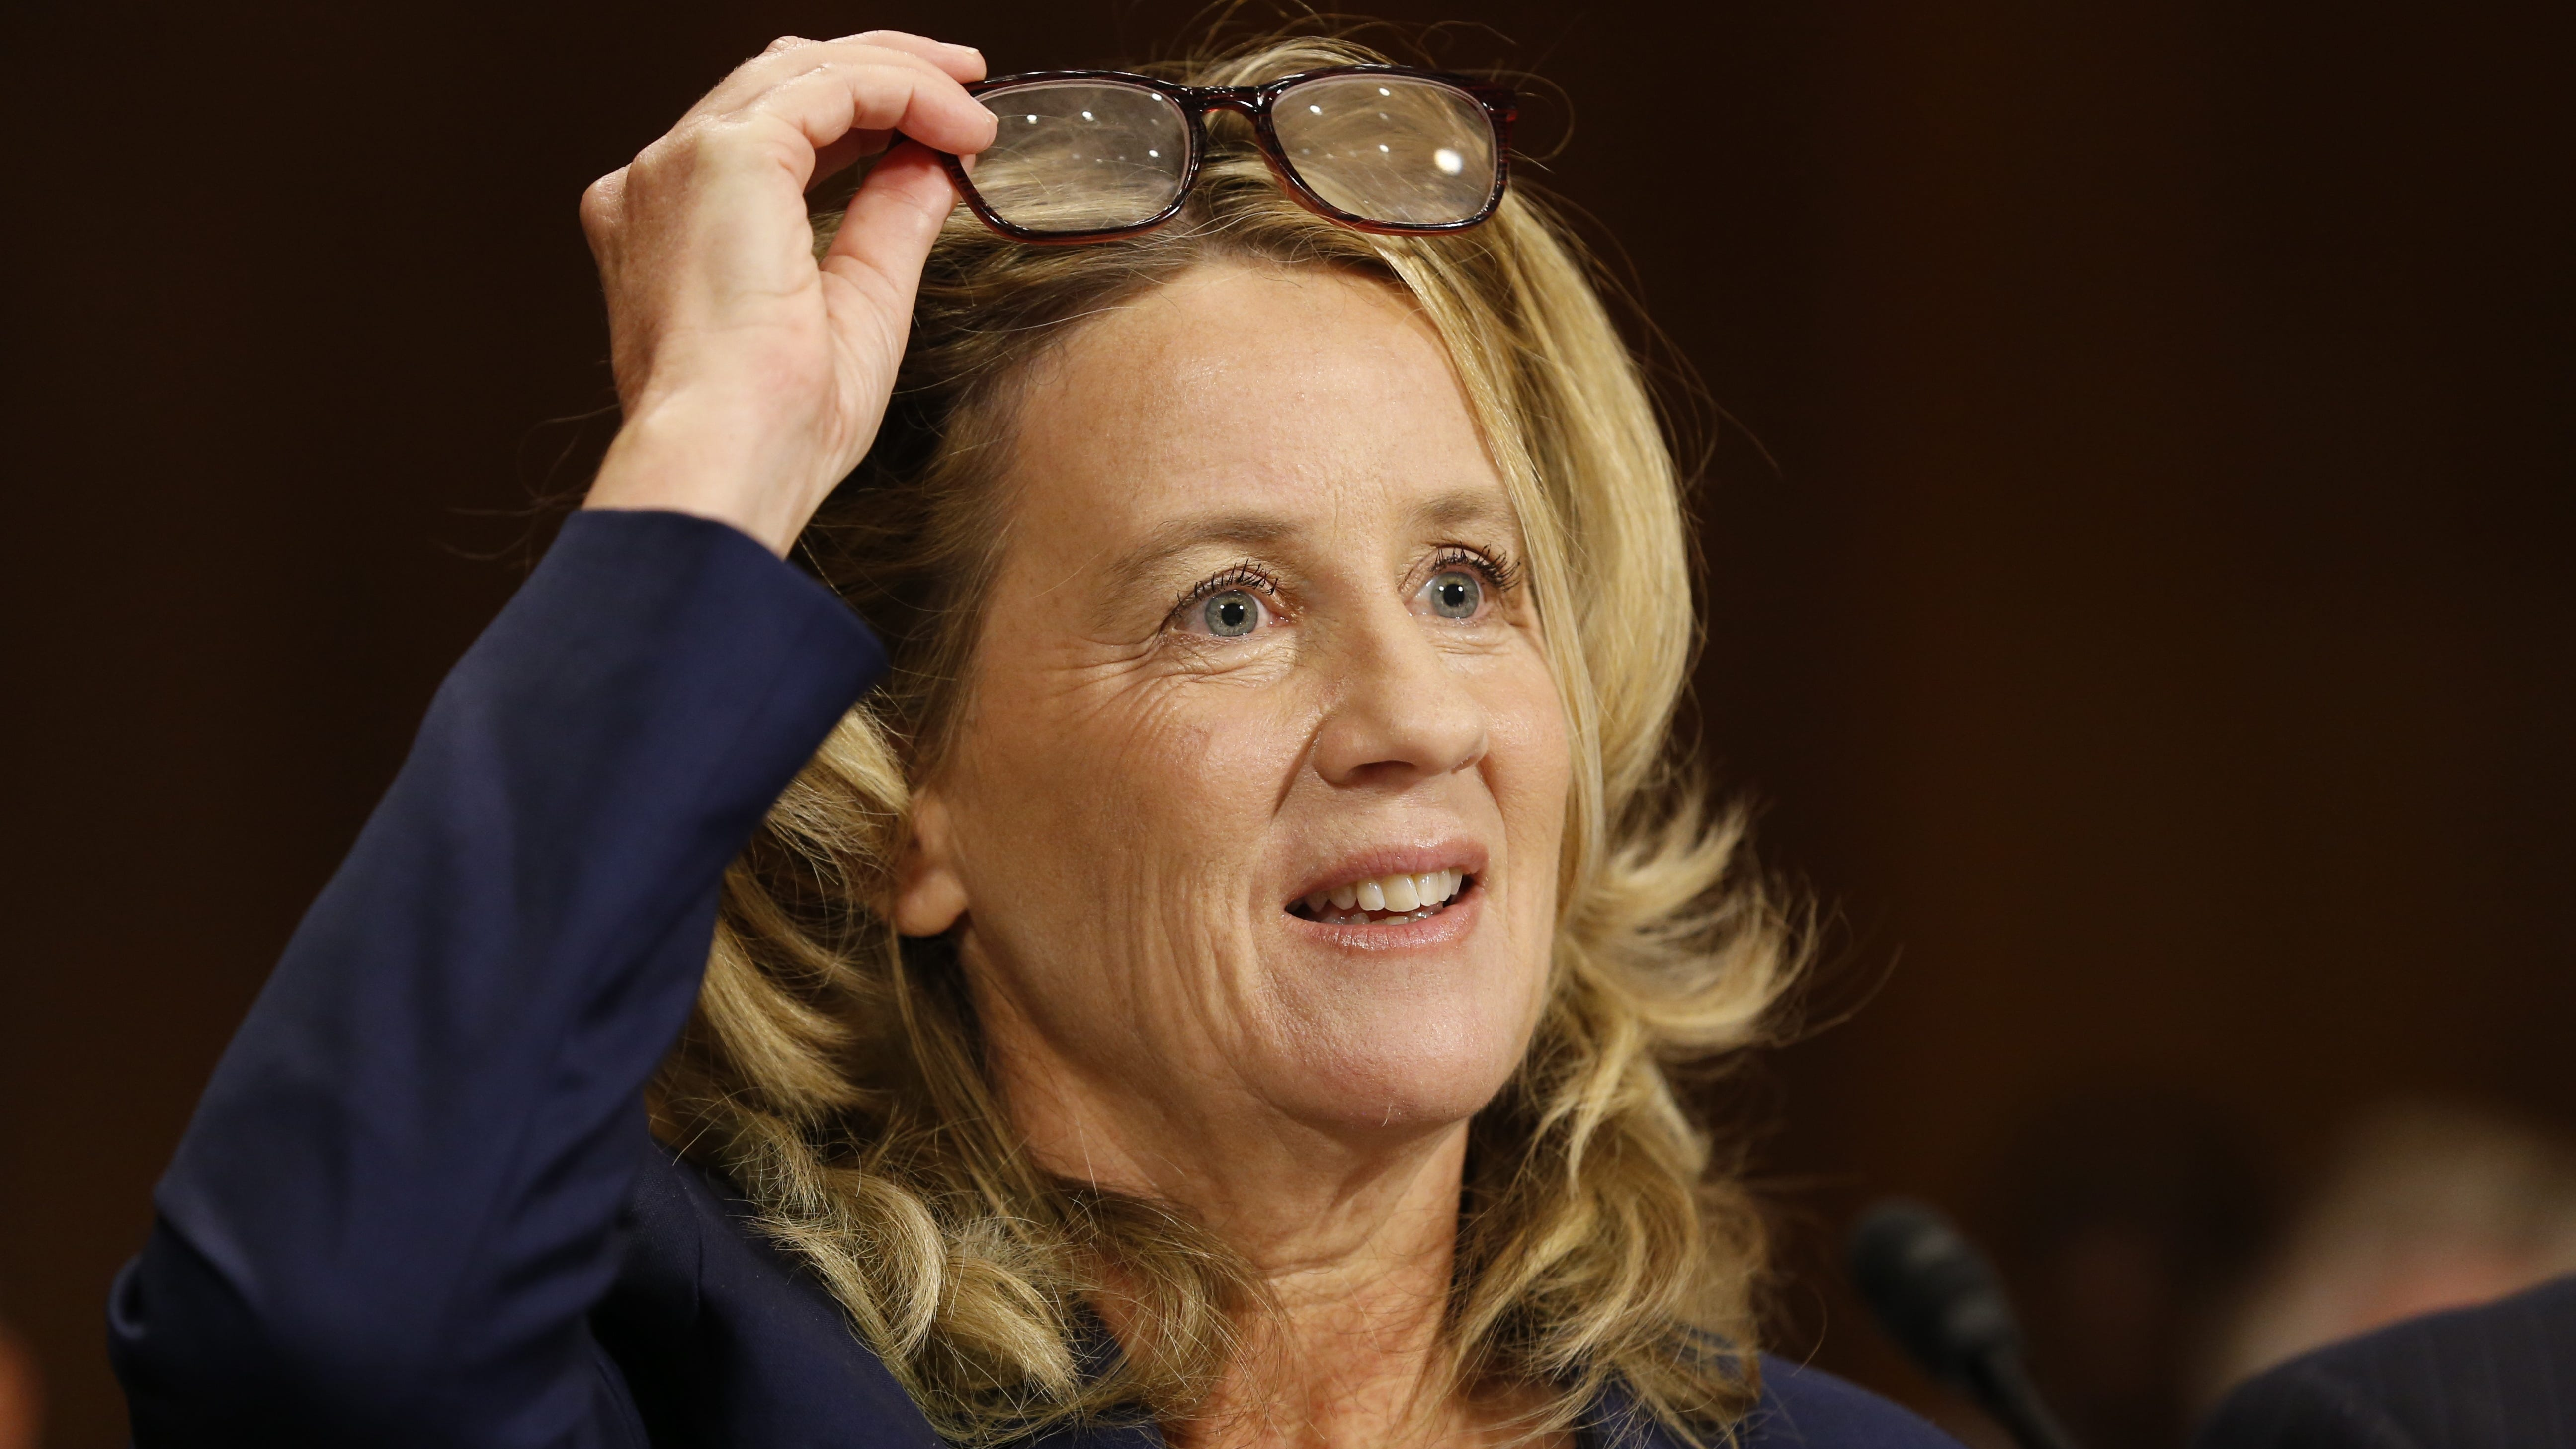 Social media reacts to Christine Blasey Ford hearing: 'It takes courage' vs. 'obviously scripted'